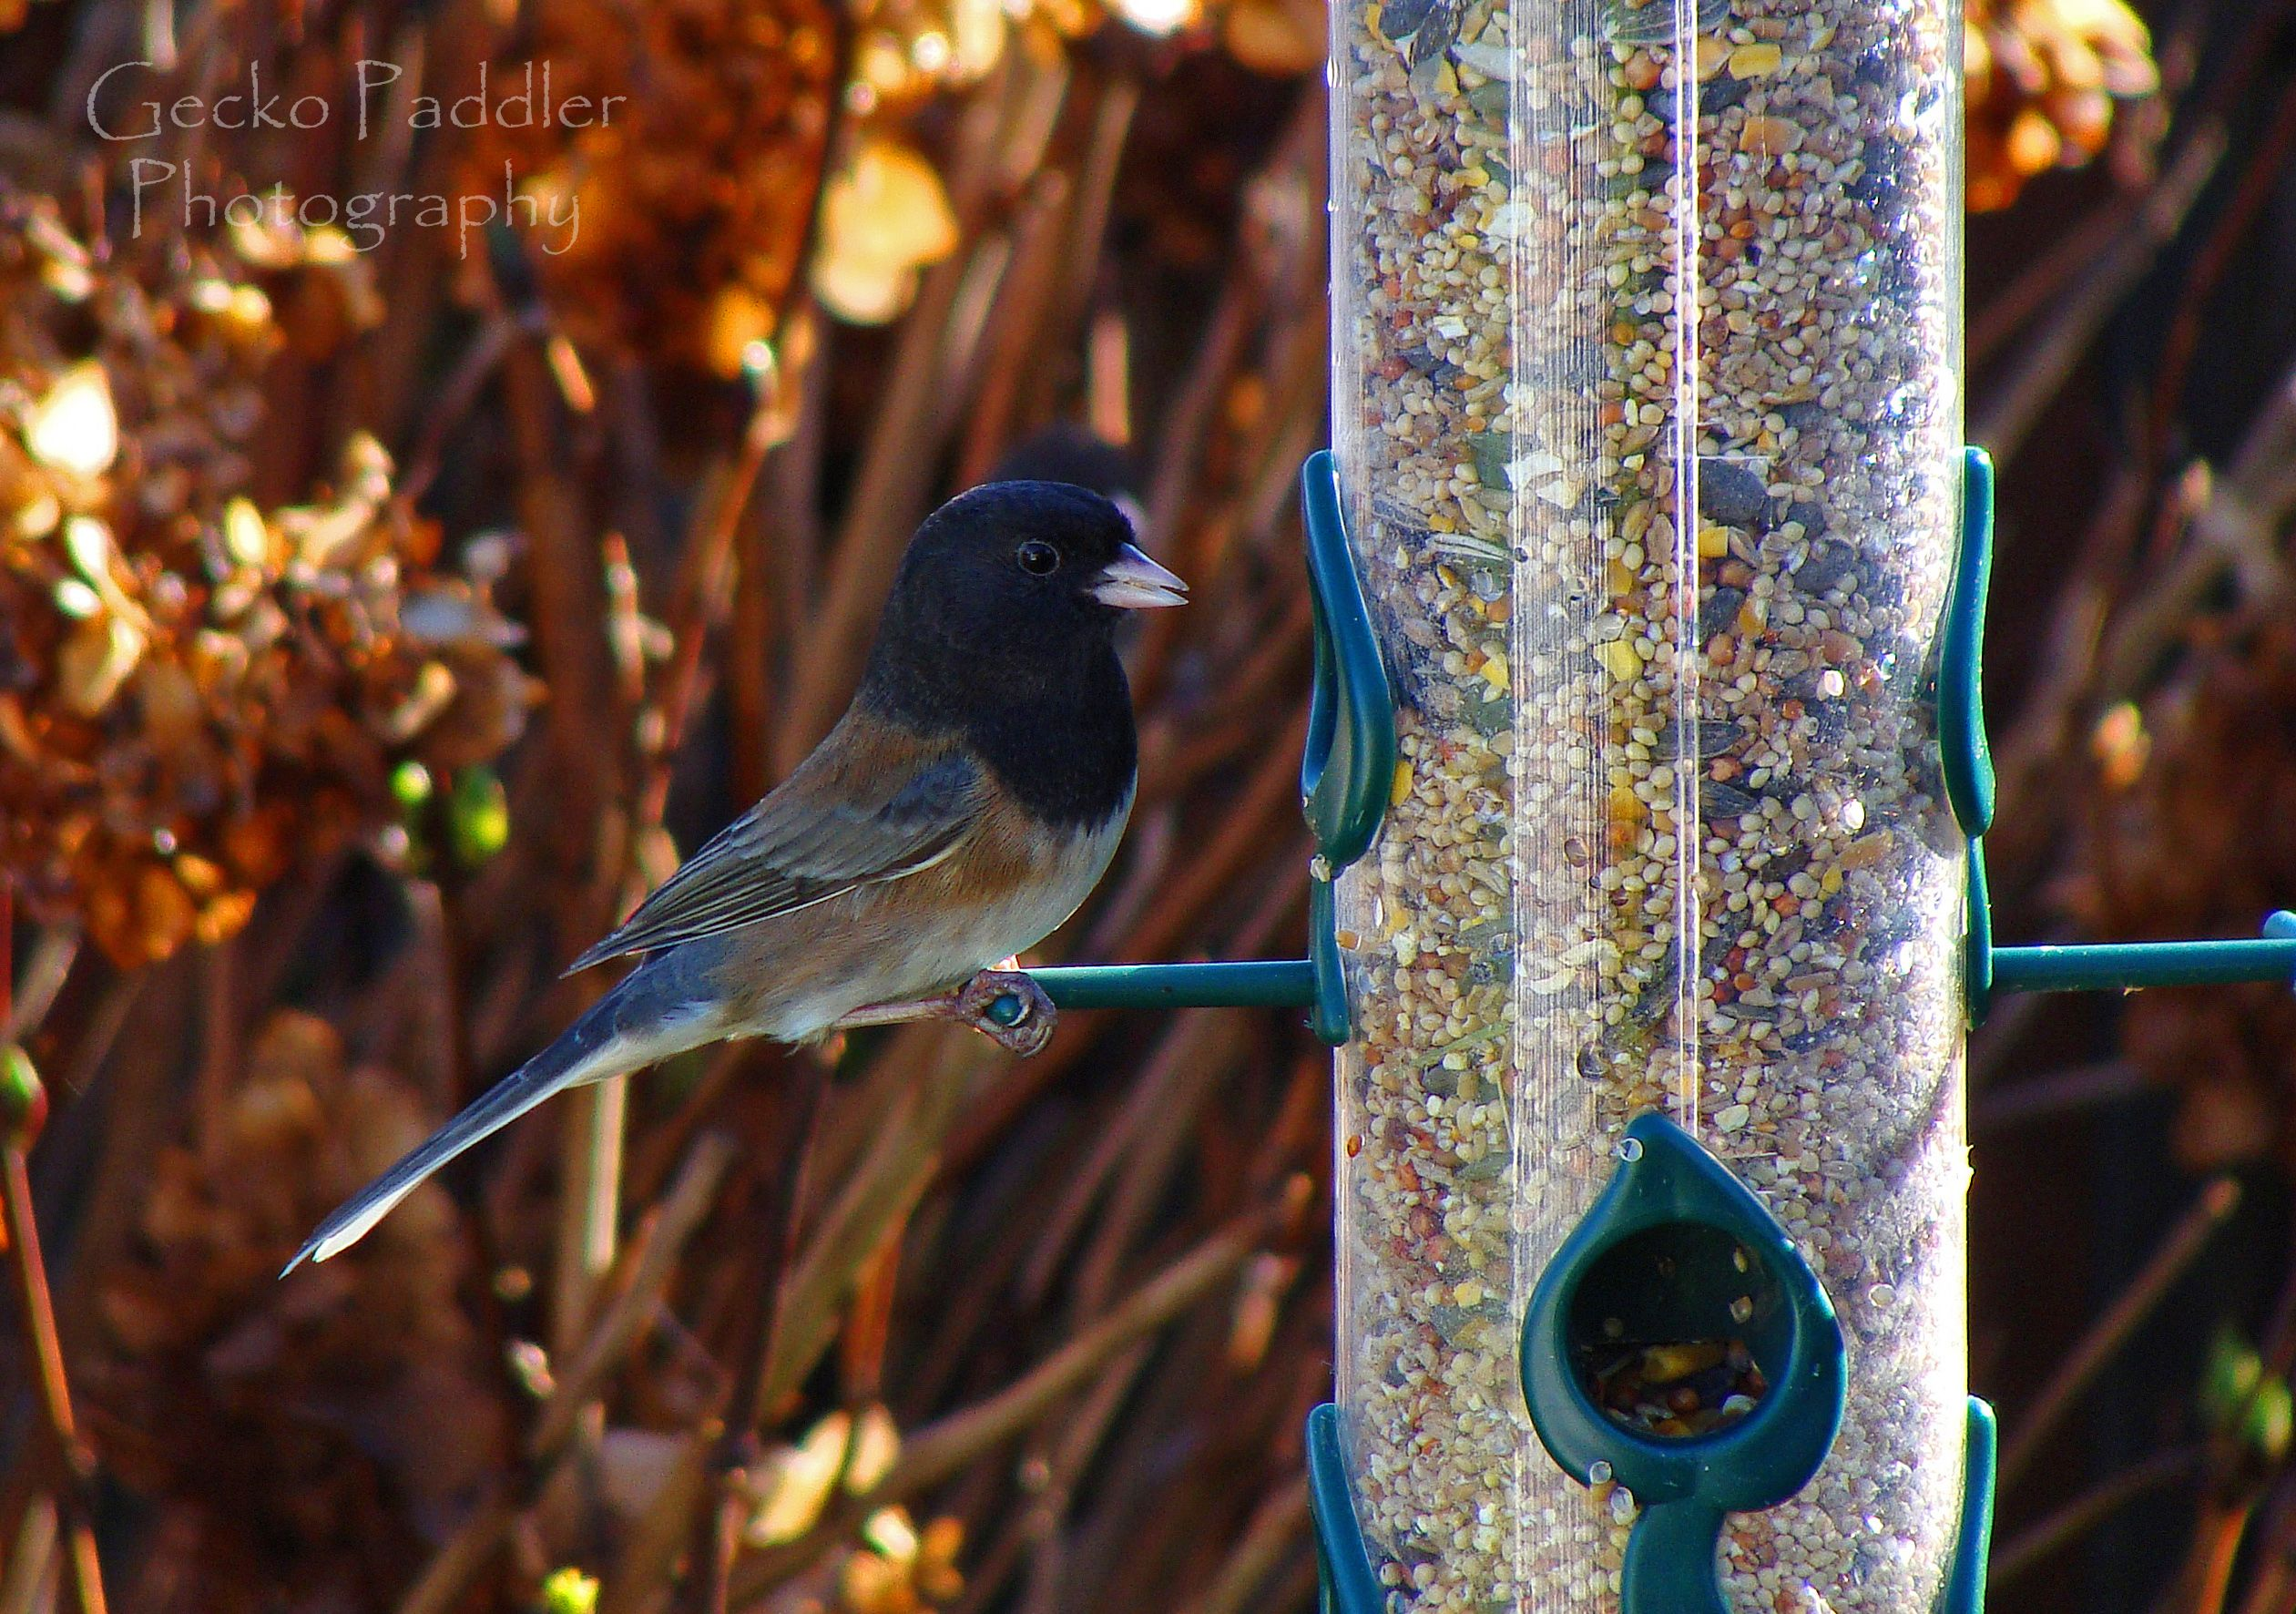 Lots of Junco's around the feeders this morning. This Oregon Junco caught my attention.